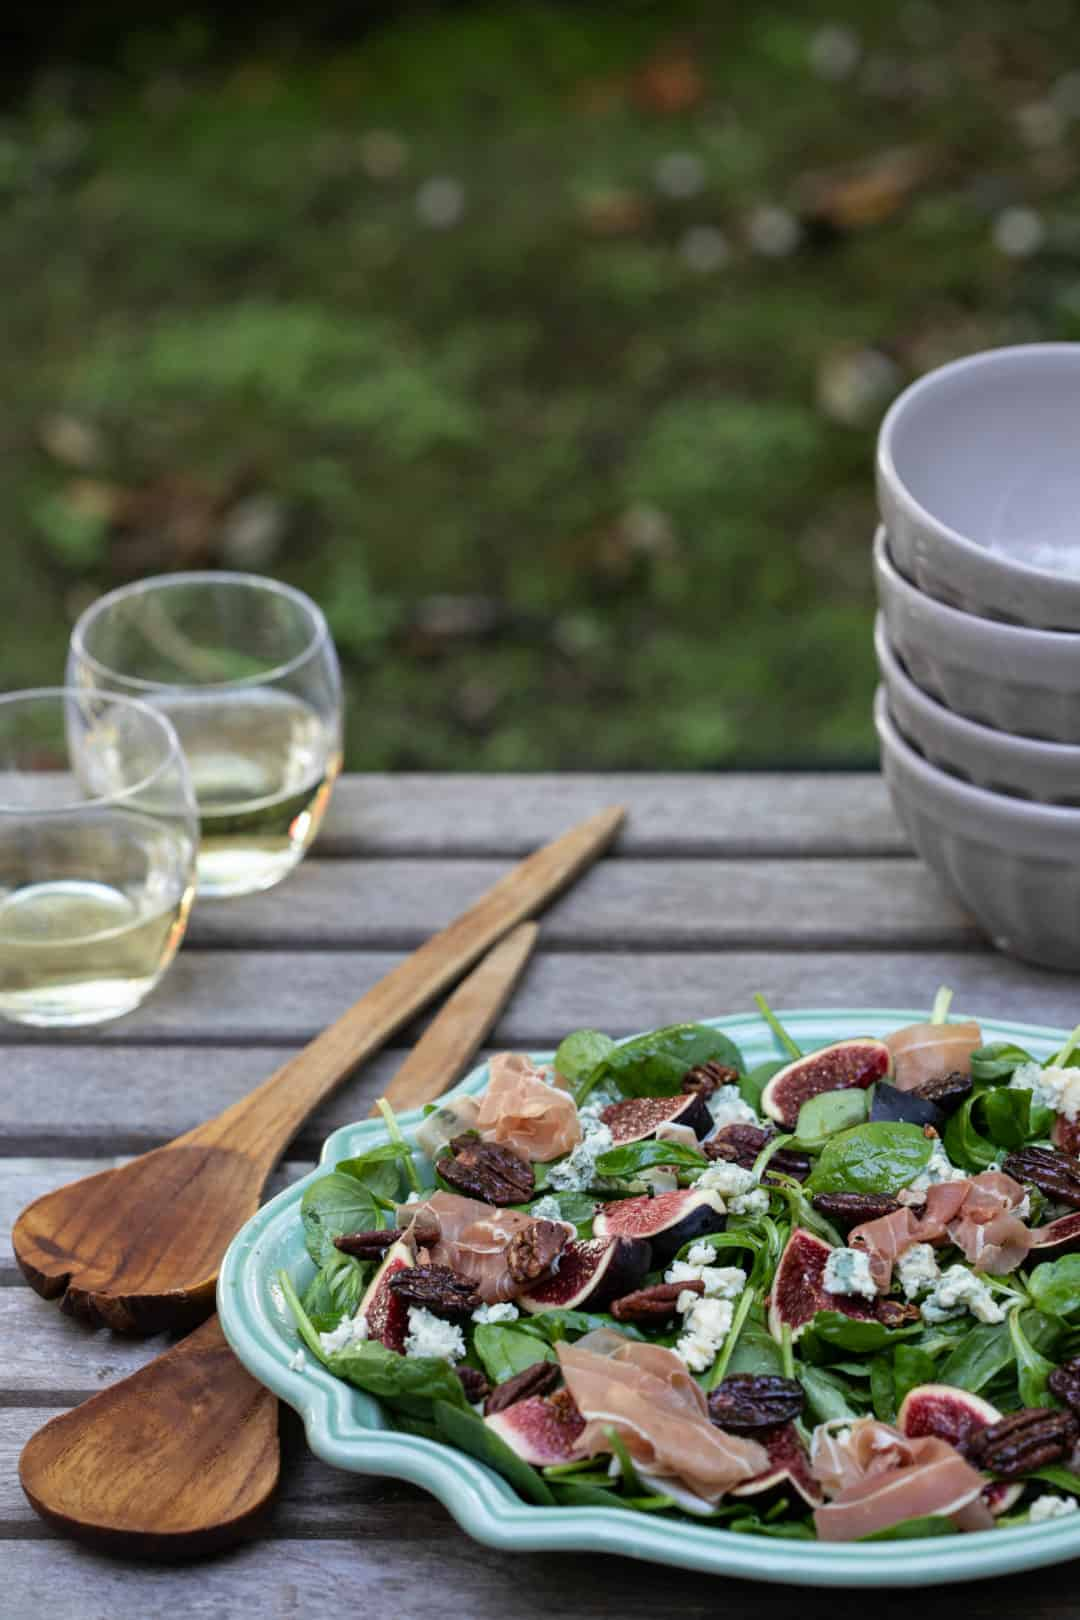 fig salad with blue cheese, pecans, and proscuitto on wooden table outside with glasses of wine, bowls, and serving utensils